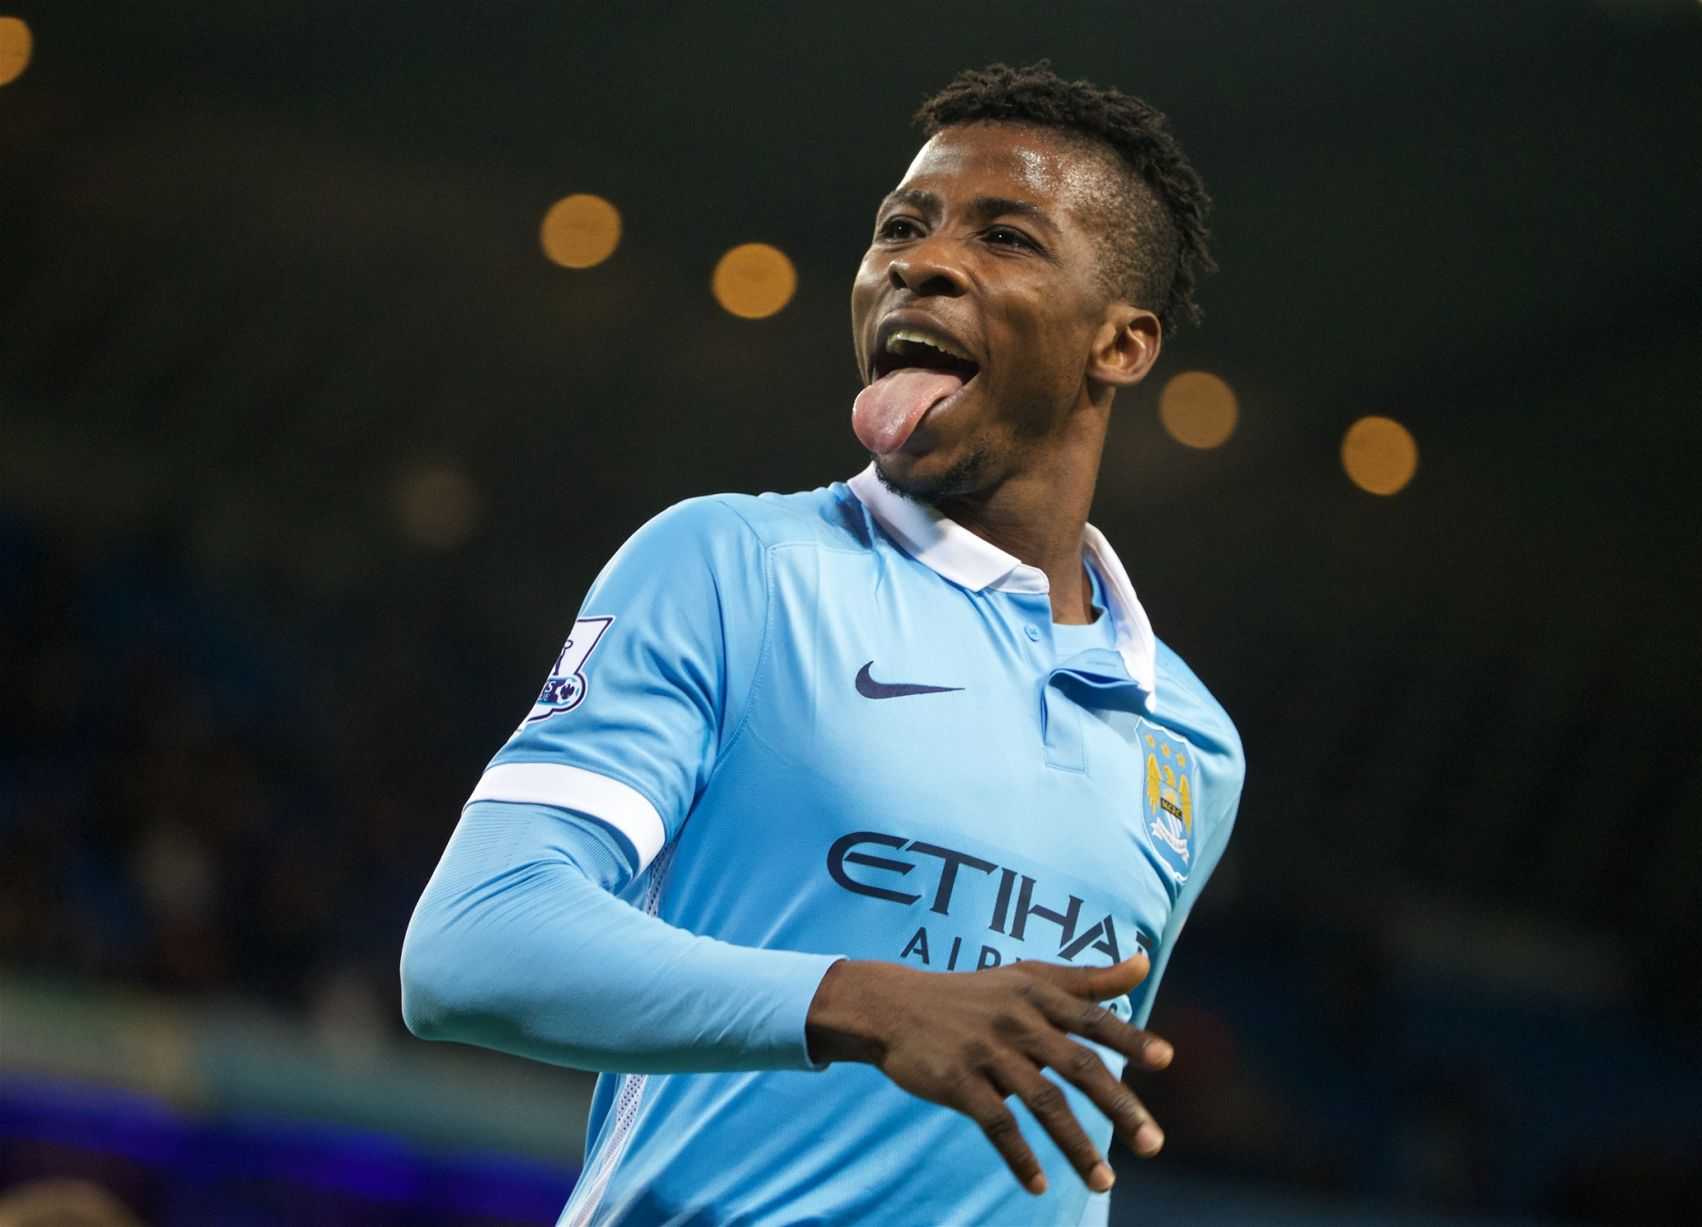 Academy star - Kelechi Iheanacho scored his third senior goal for City against Hull in the League Cup.